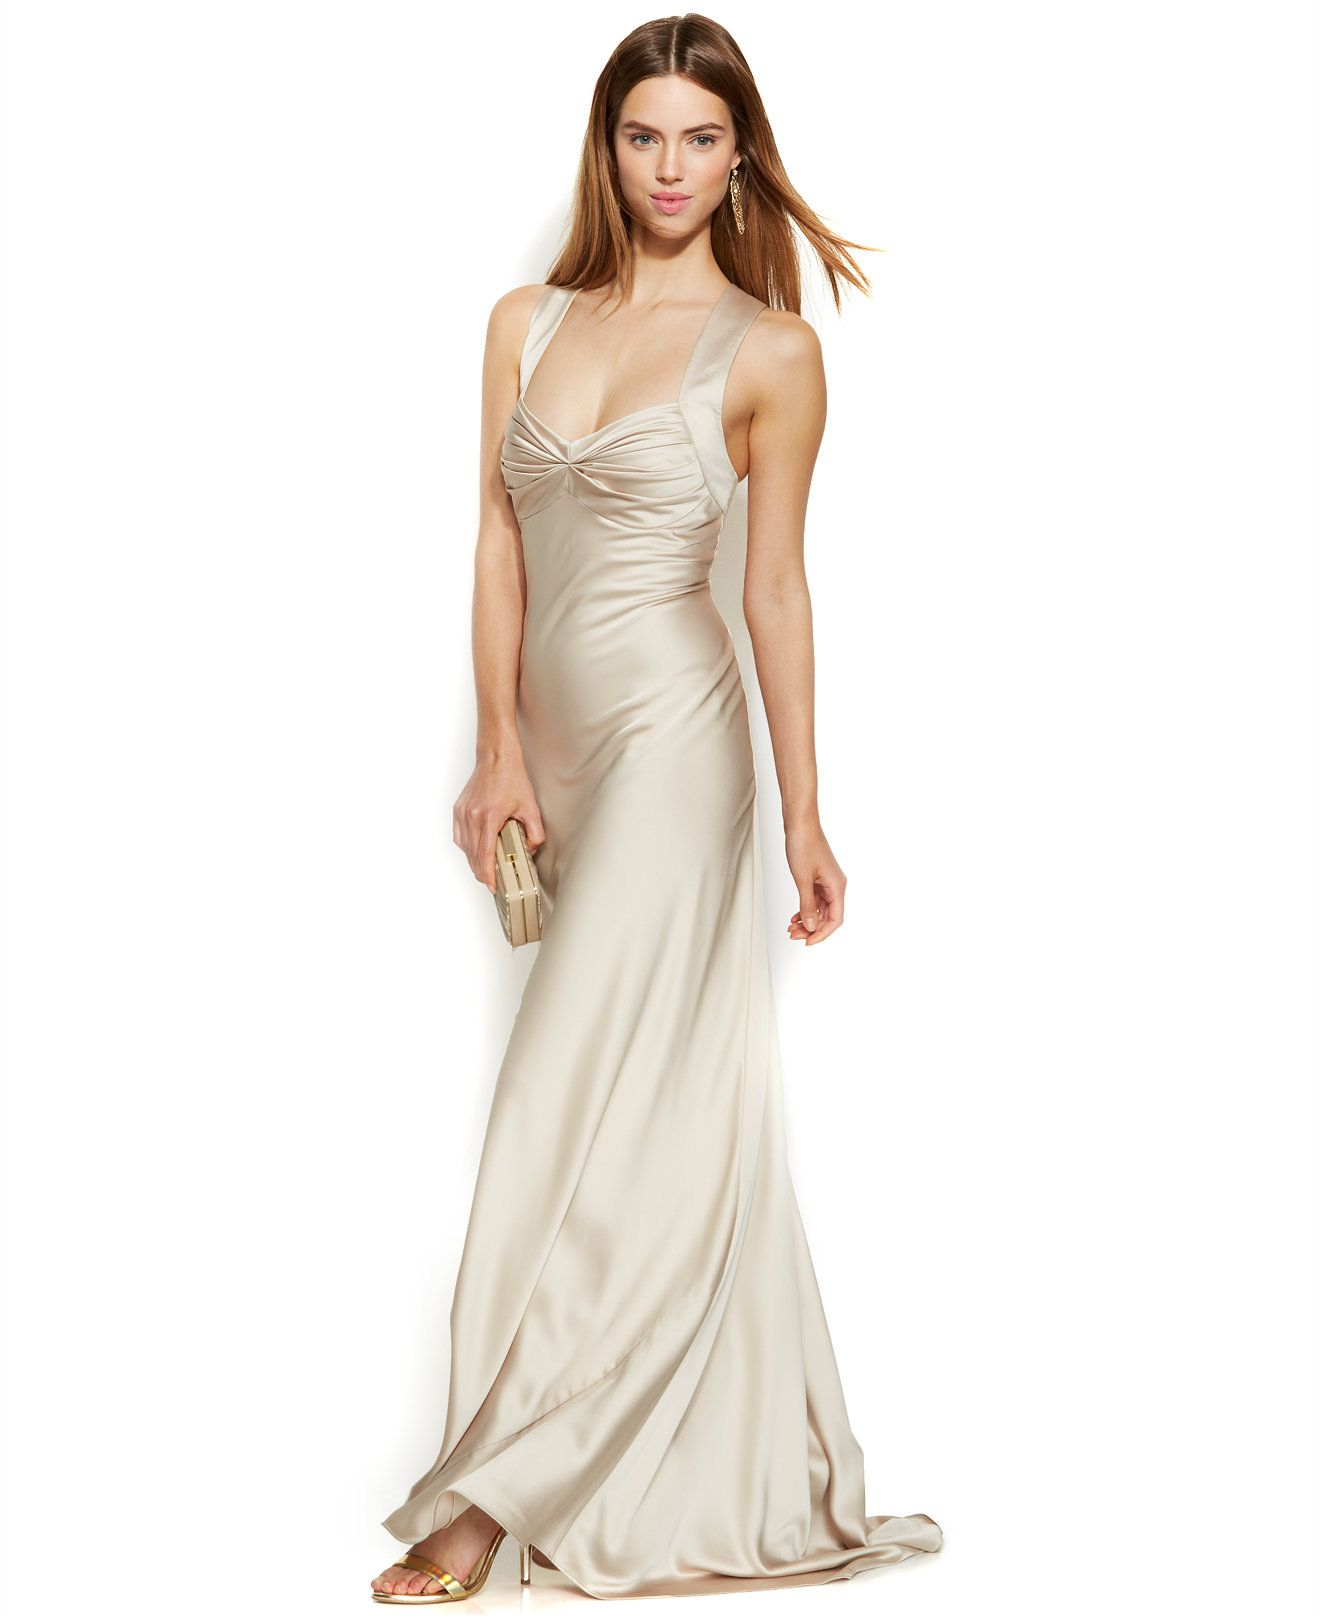 Calvin Klein Wedding Gowns: Calvin Klein Sleeveless Satin Sweetheart Gown